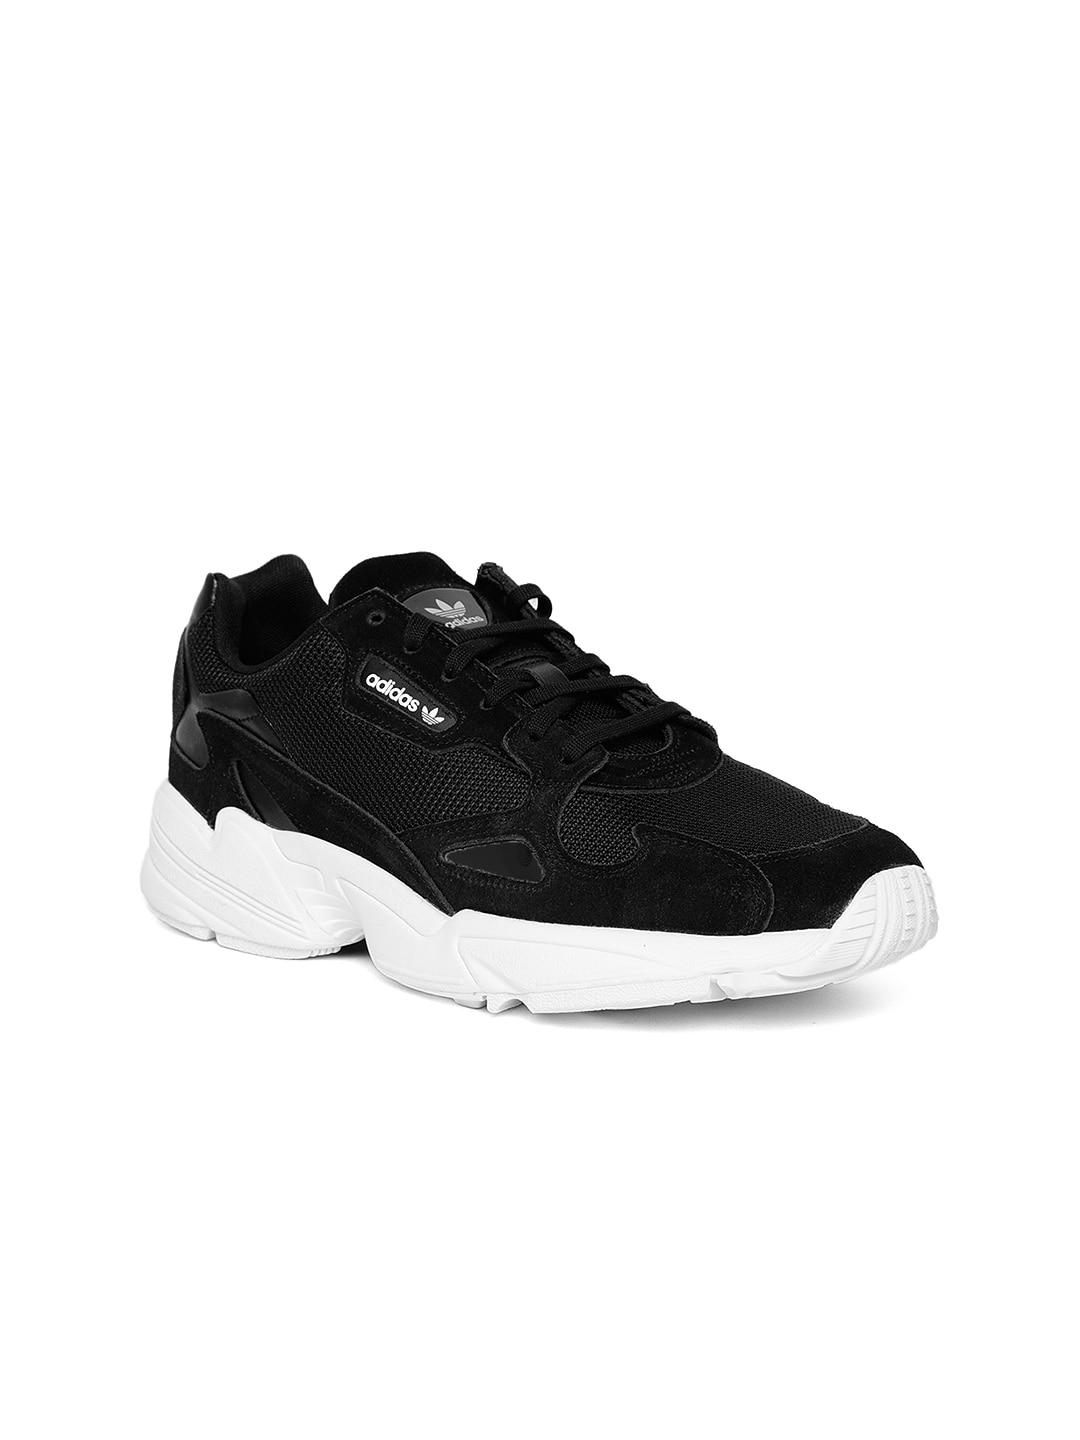 finest selection 60590 4163c Adidas Falcon - Buy Adidas Falcon online in India